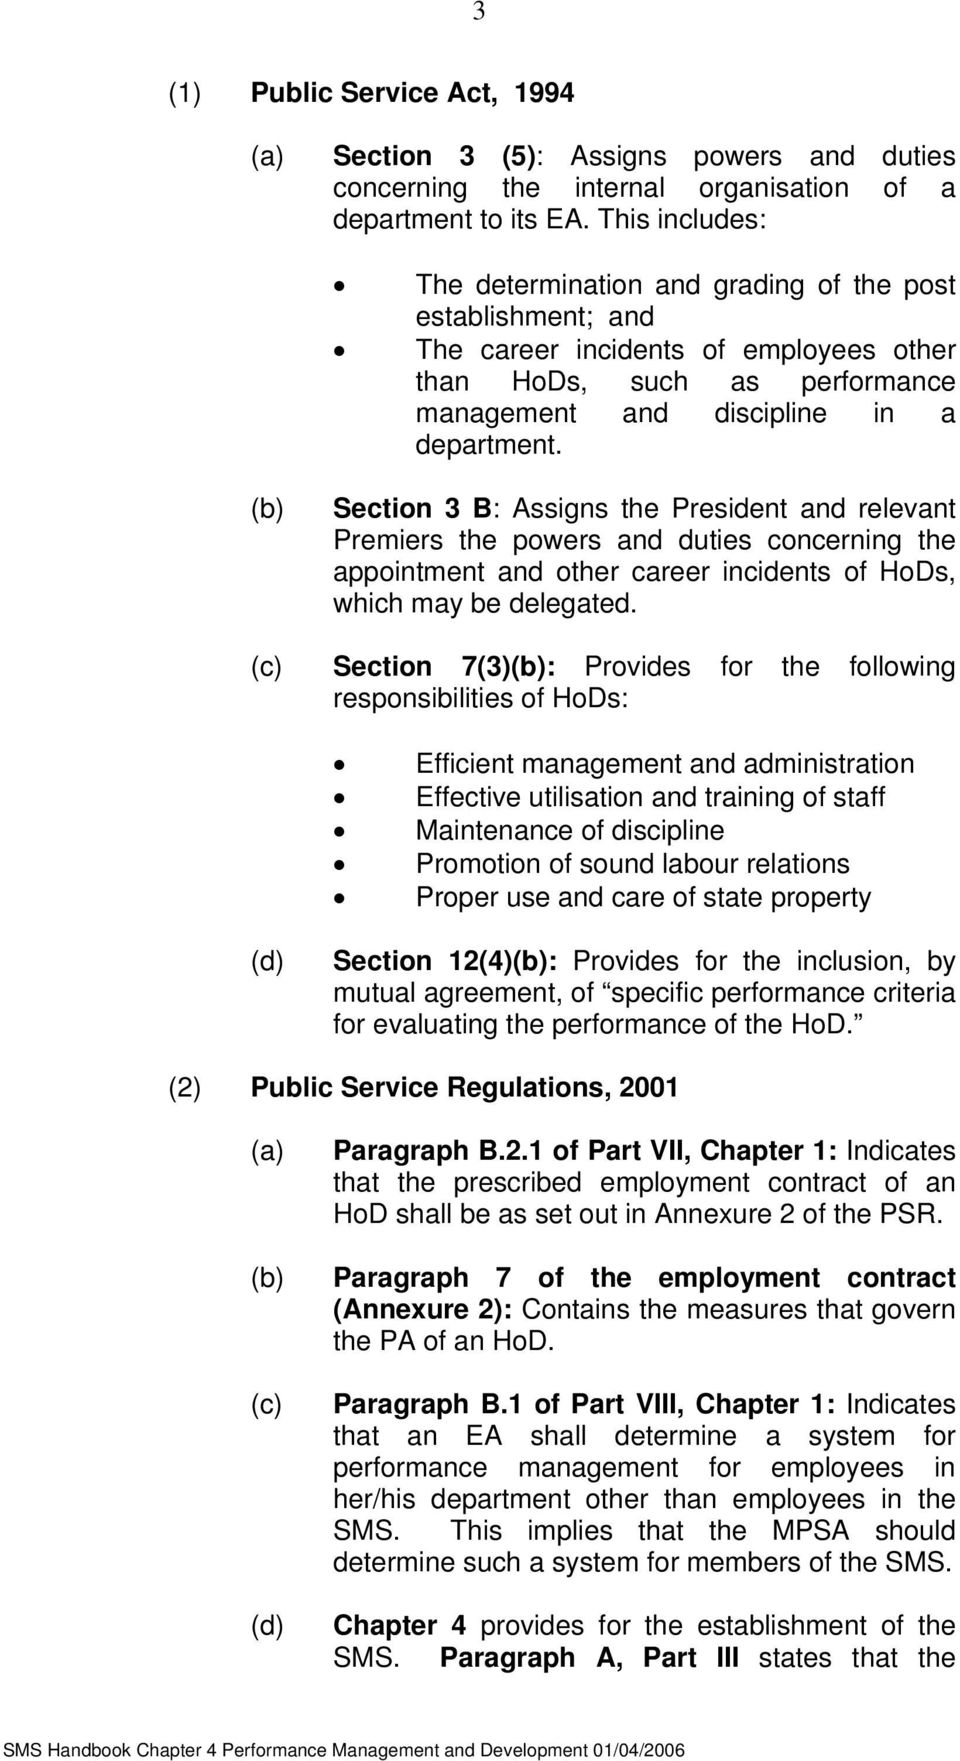 Section 3 B: Assigns the President and relevant Premiers the powers and duties concerning the appointment and other career incidents of HoDs, which may be delegated.